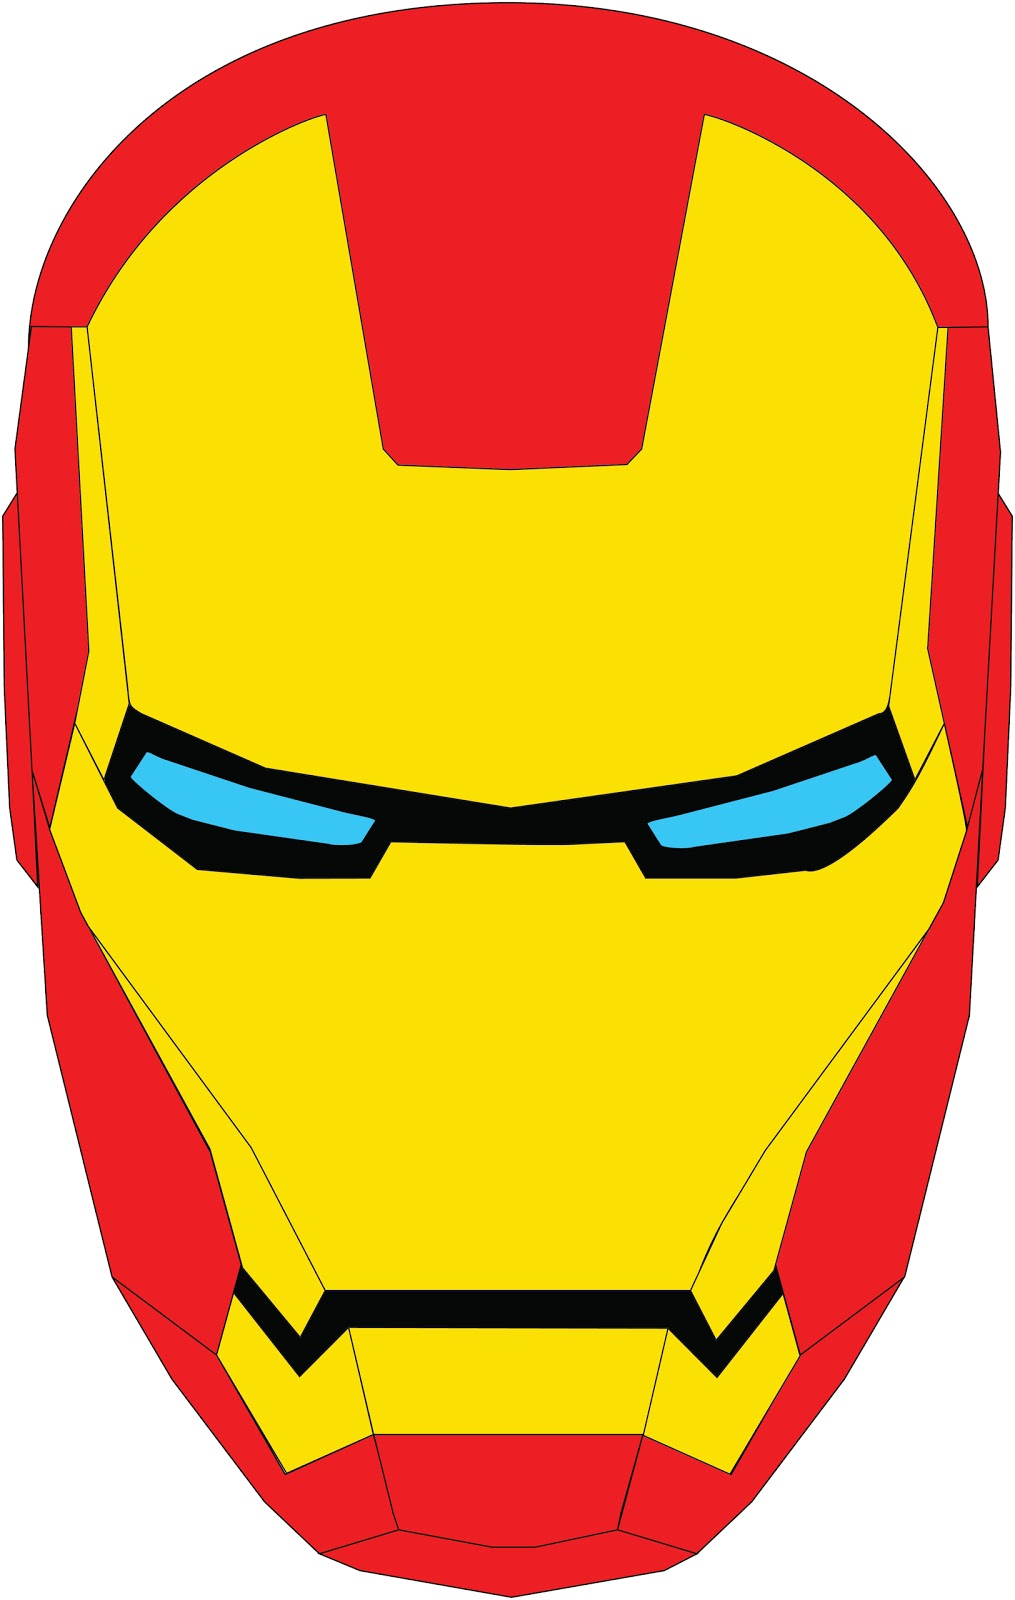 Damien mallon graphic design illustration iron man vectors for Iron man face mask template